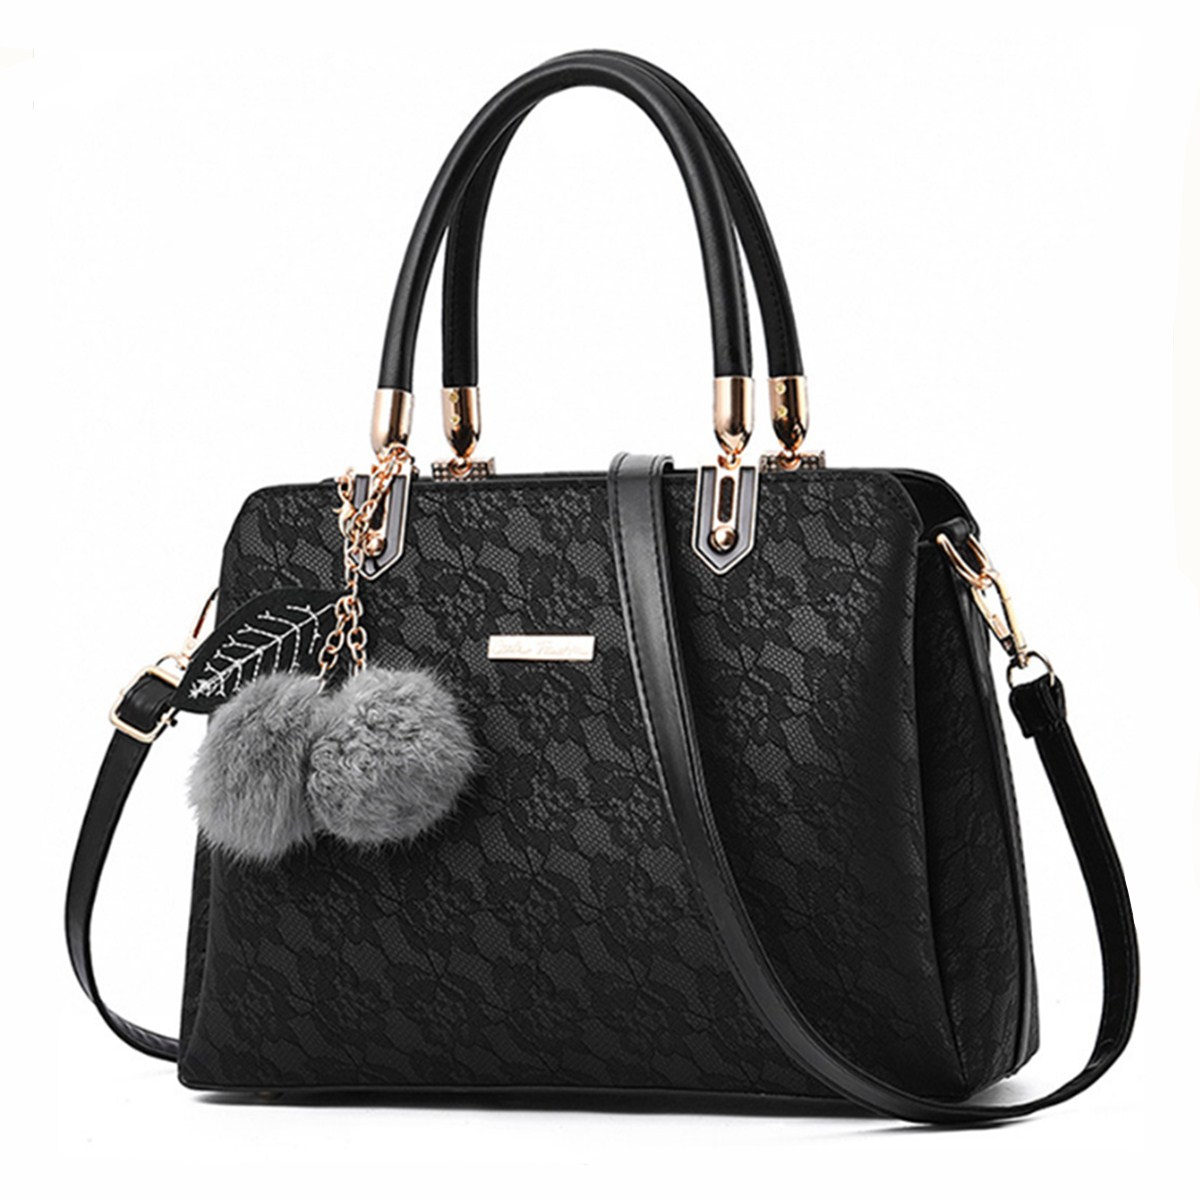 Female bag 2018 new fashion embroidery Lace handbag Europe and America Leather ladies shoulder bag can be slung With Hairball aetoo the new oil wax cow leather bags real leather bag fashion in europe and america big capacity of the bag